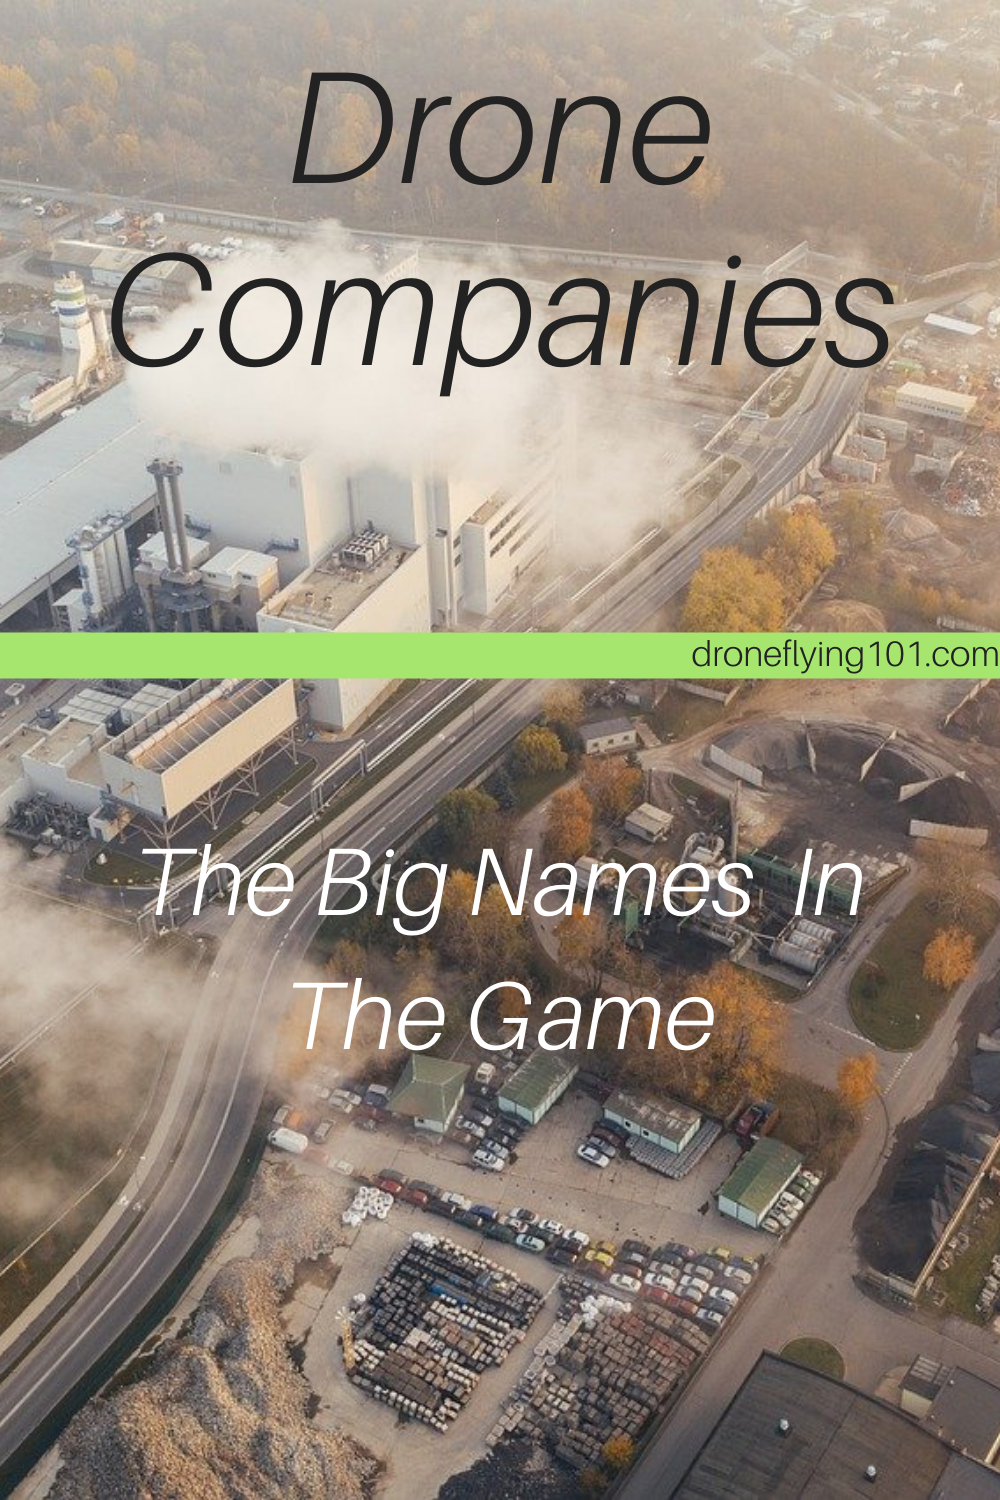 Drone Companies: The Big Names In The Game